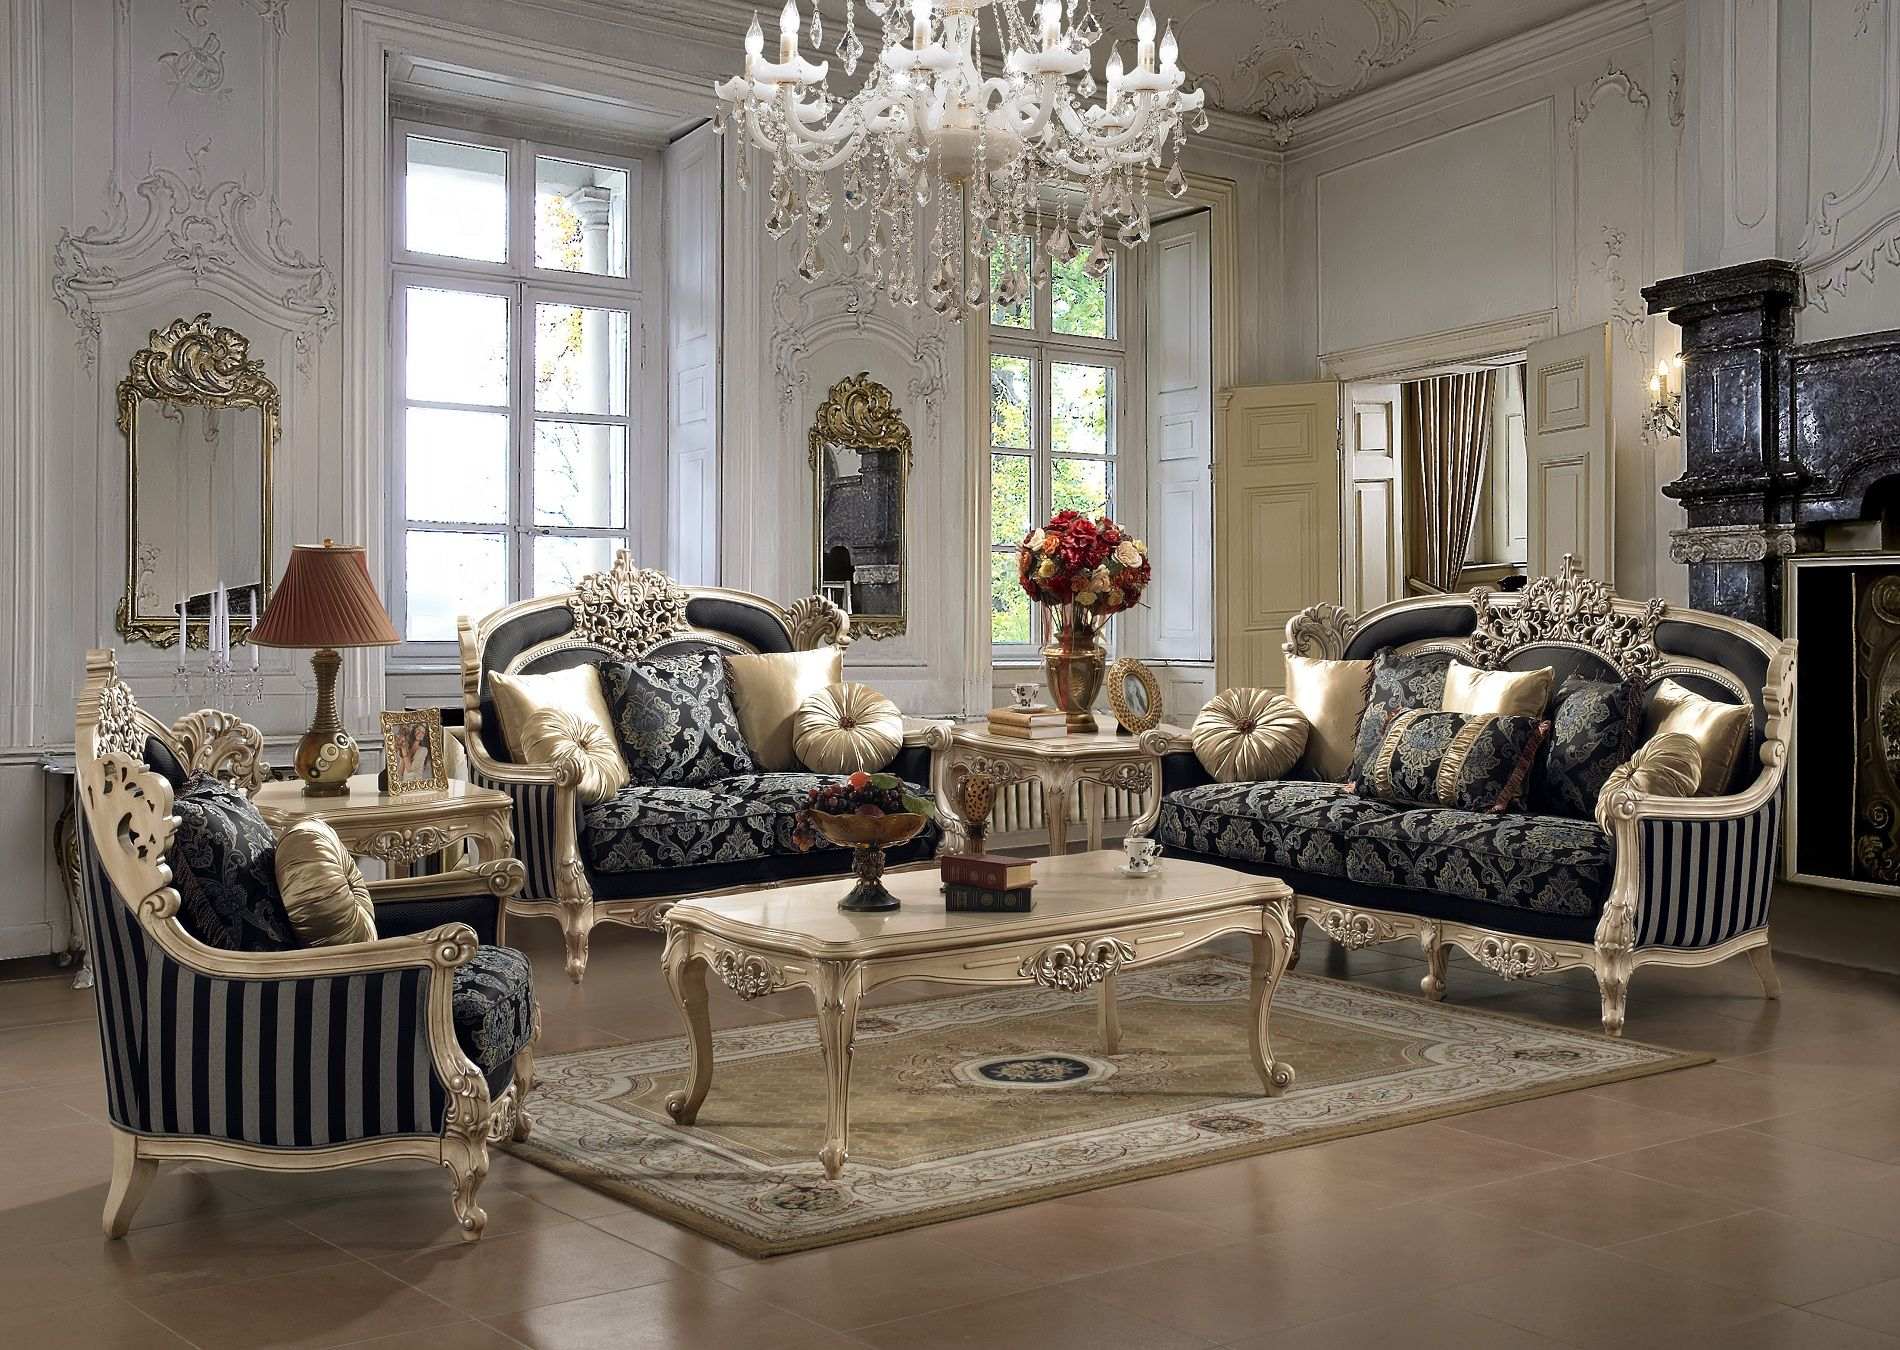 luxury living room set. Royal style 3 Piece Living Room sofa Set with Accent Pillows